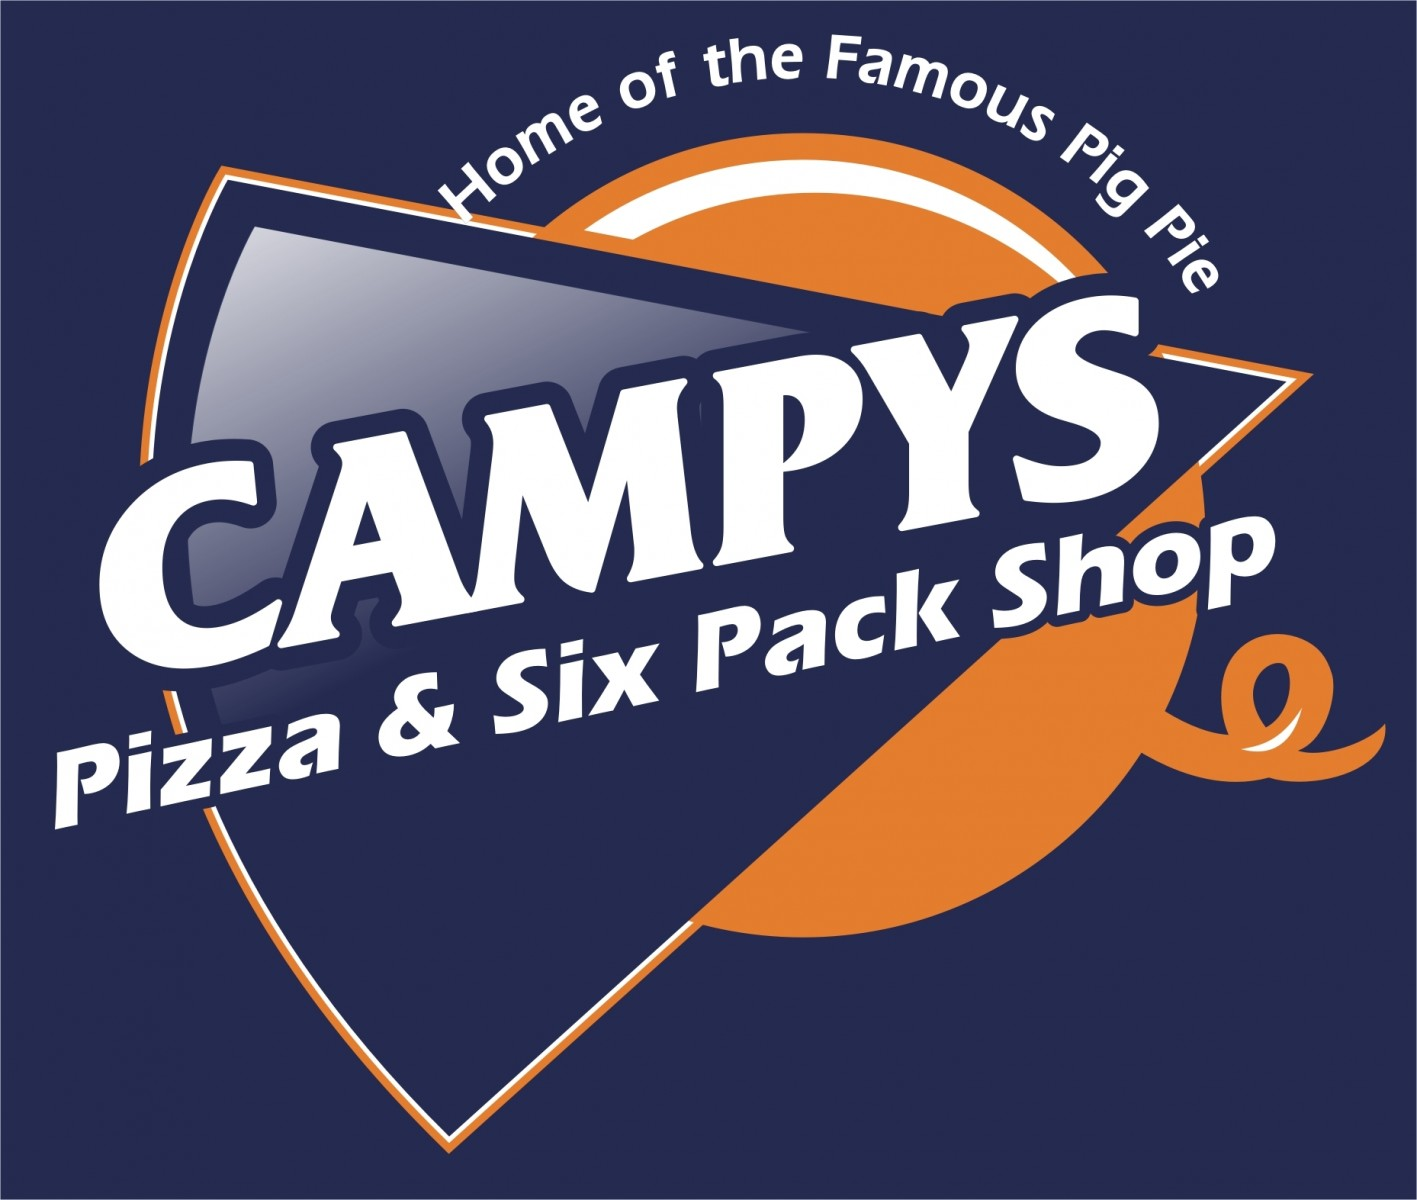 Campy's Pizza